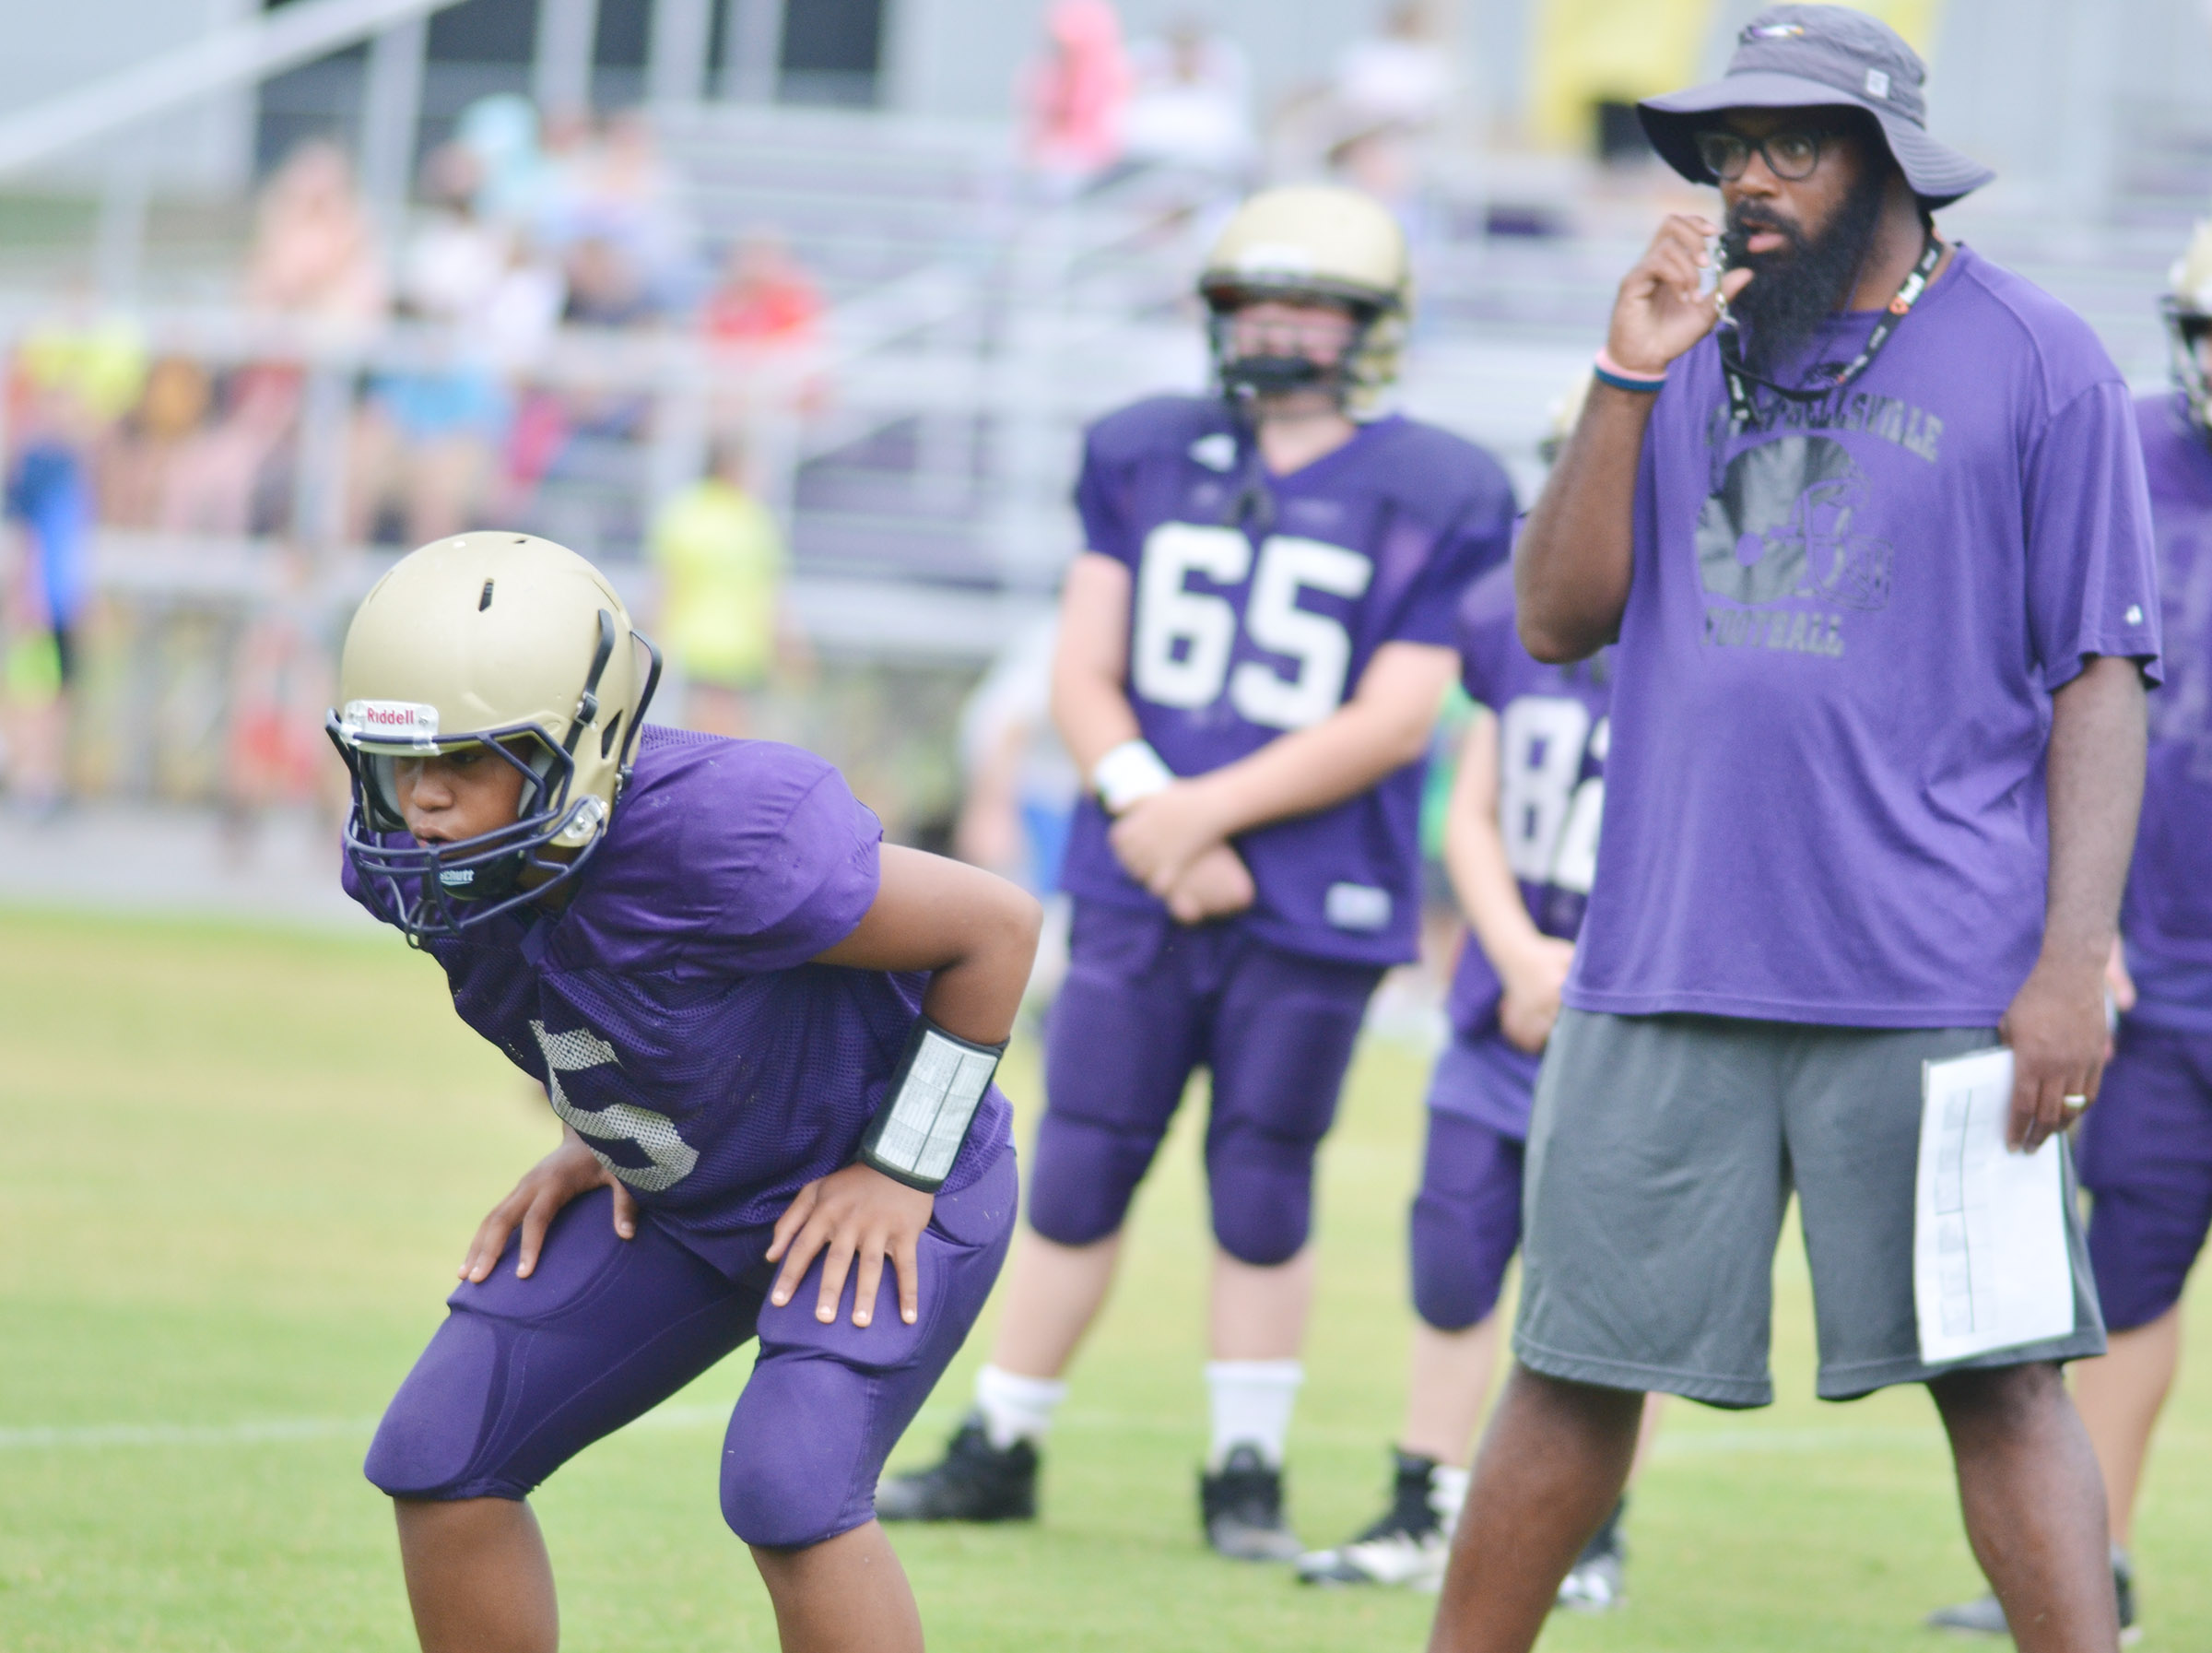 CMS seventh-grader Deondre Weathers gets set during a warmup drill with assistant coach Will Griffin.